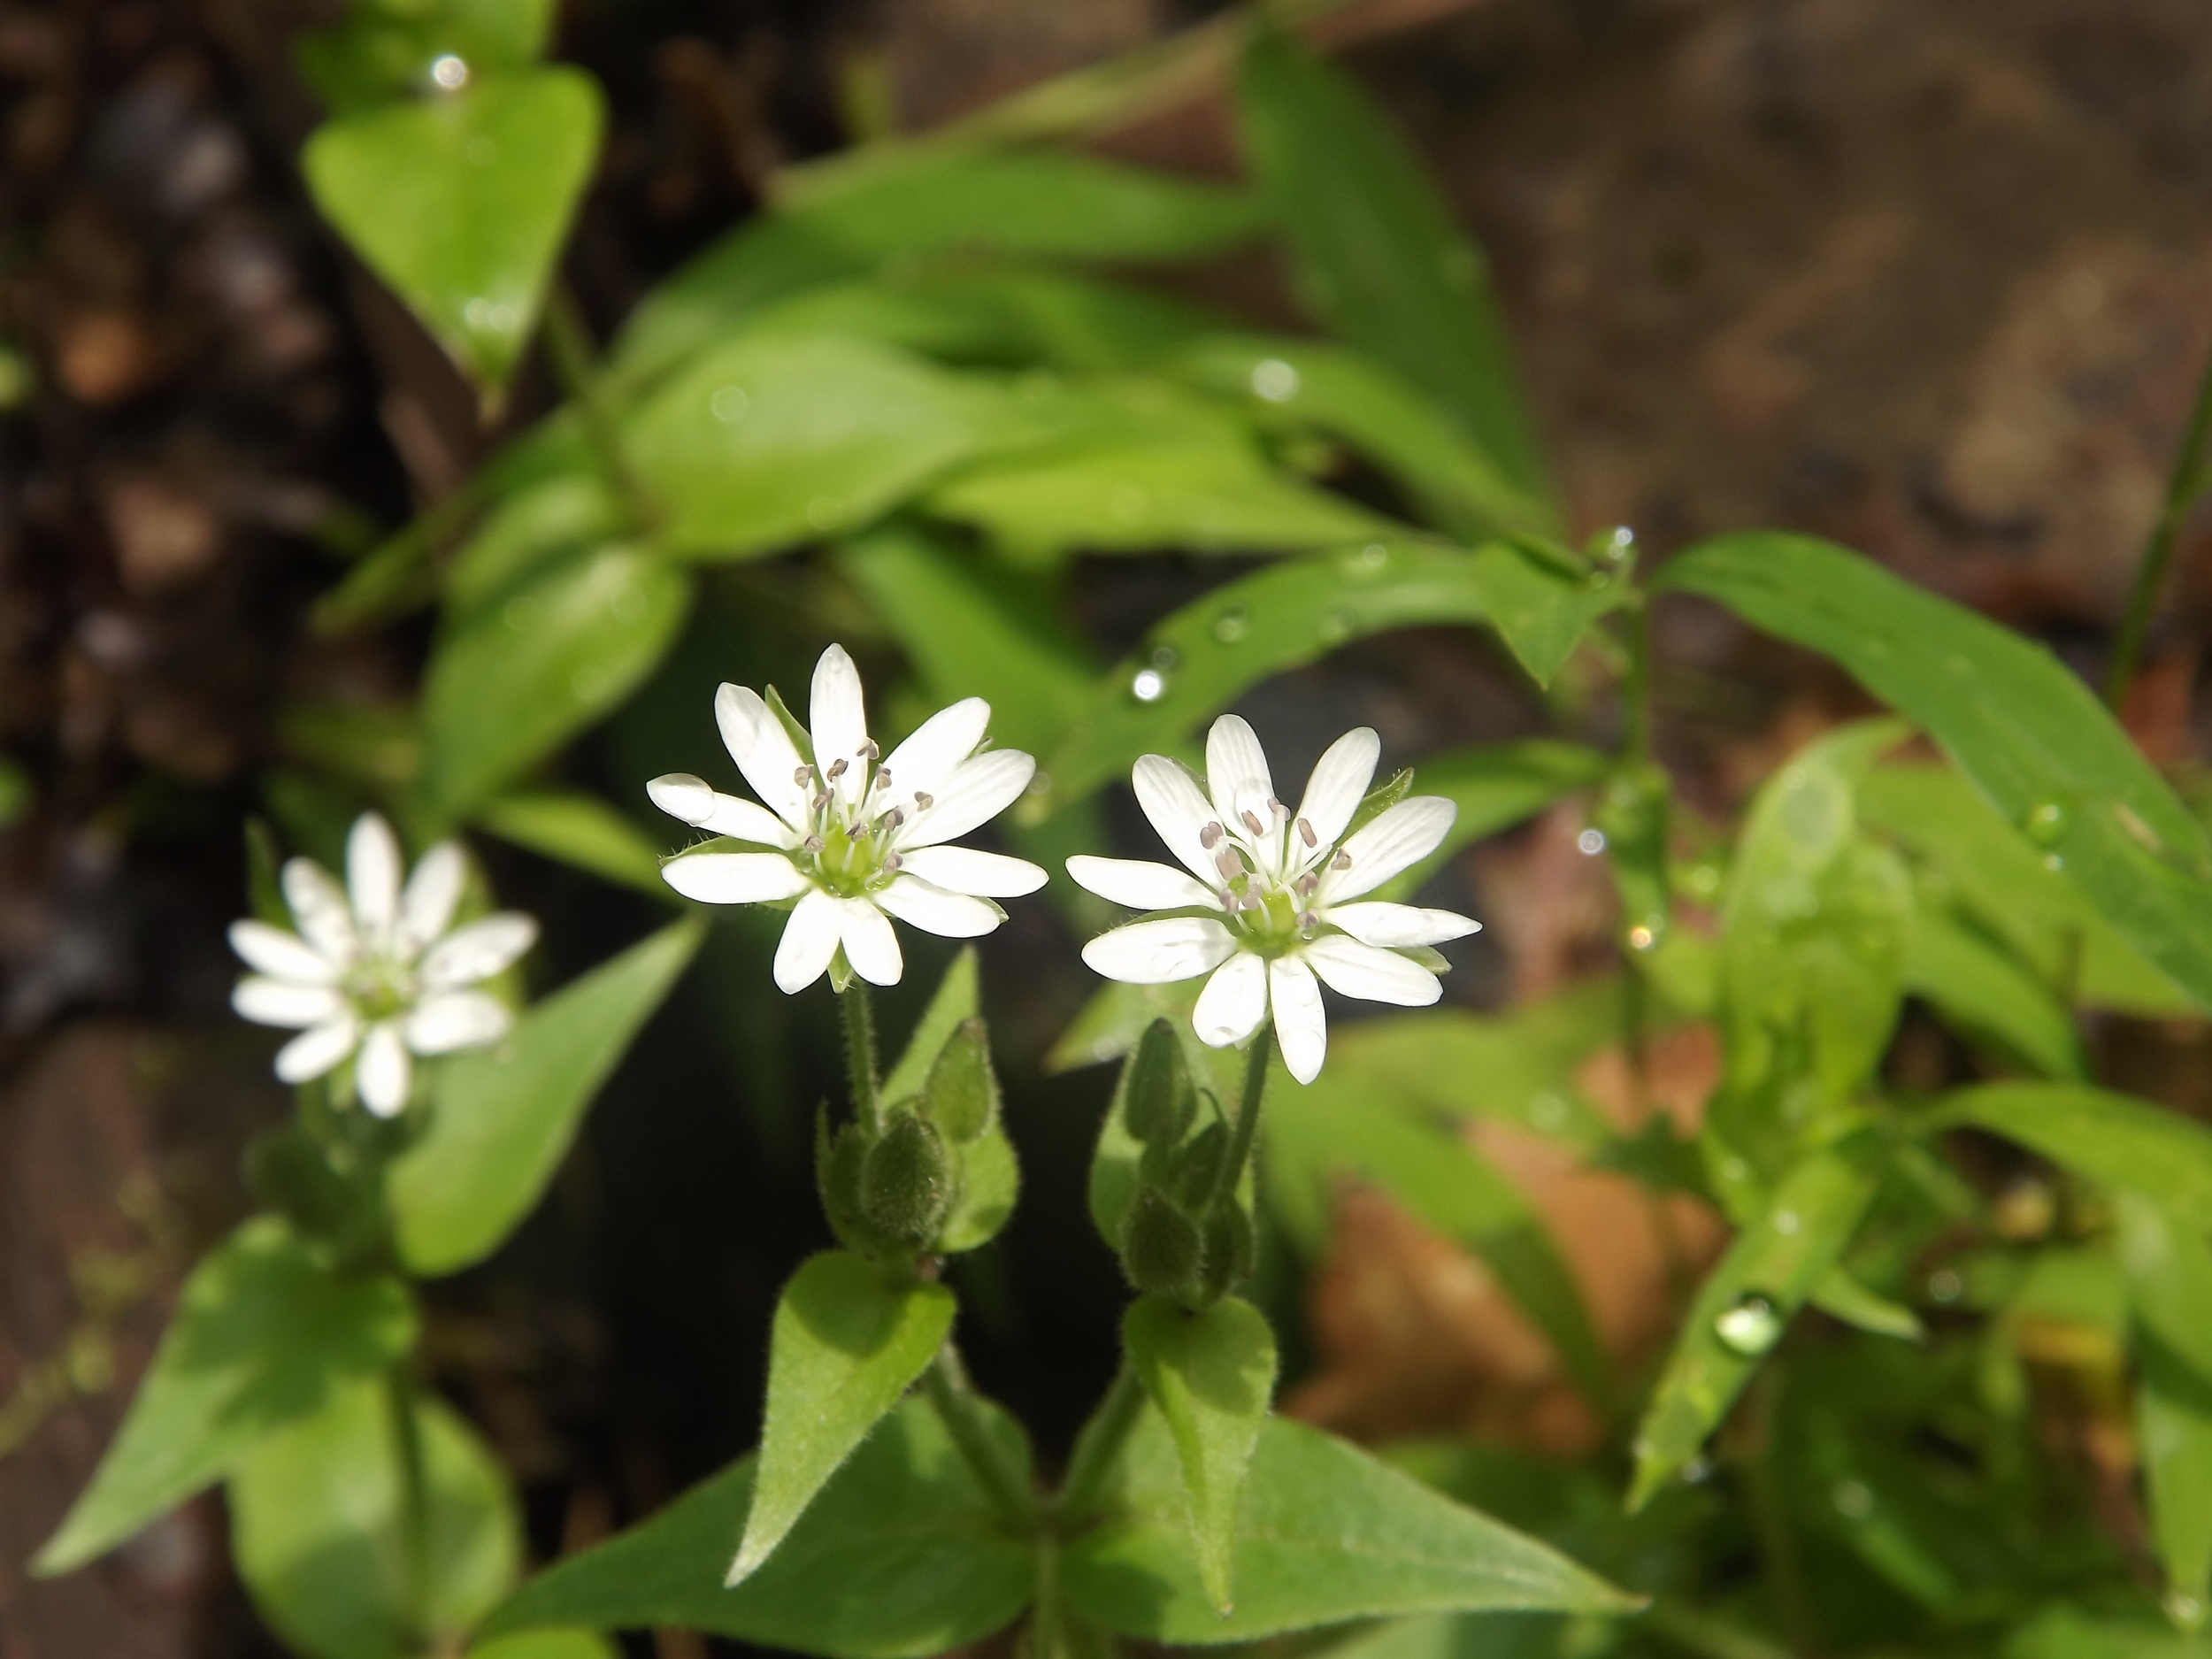 Star Chickweed ( Stellaria pubera ) - This was the only Star Chickweed plant I found on Sunday and as with many of the other specimens I find, it was right next to the creek with its roots probably in the water. A pretty little flower, the blossoms are no bigger than a nickel and the plant only reaches about knee high in height.